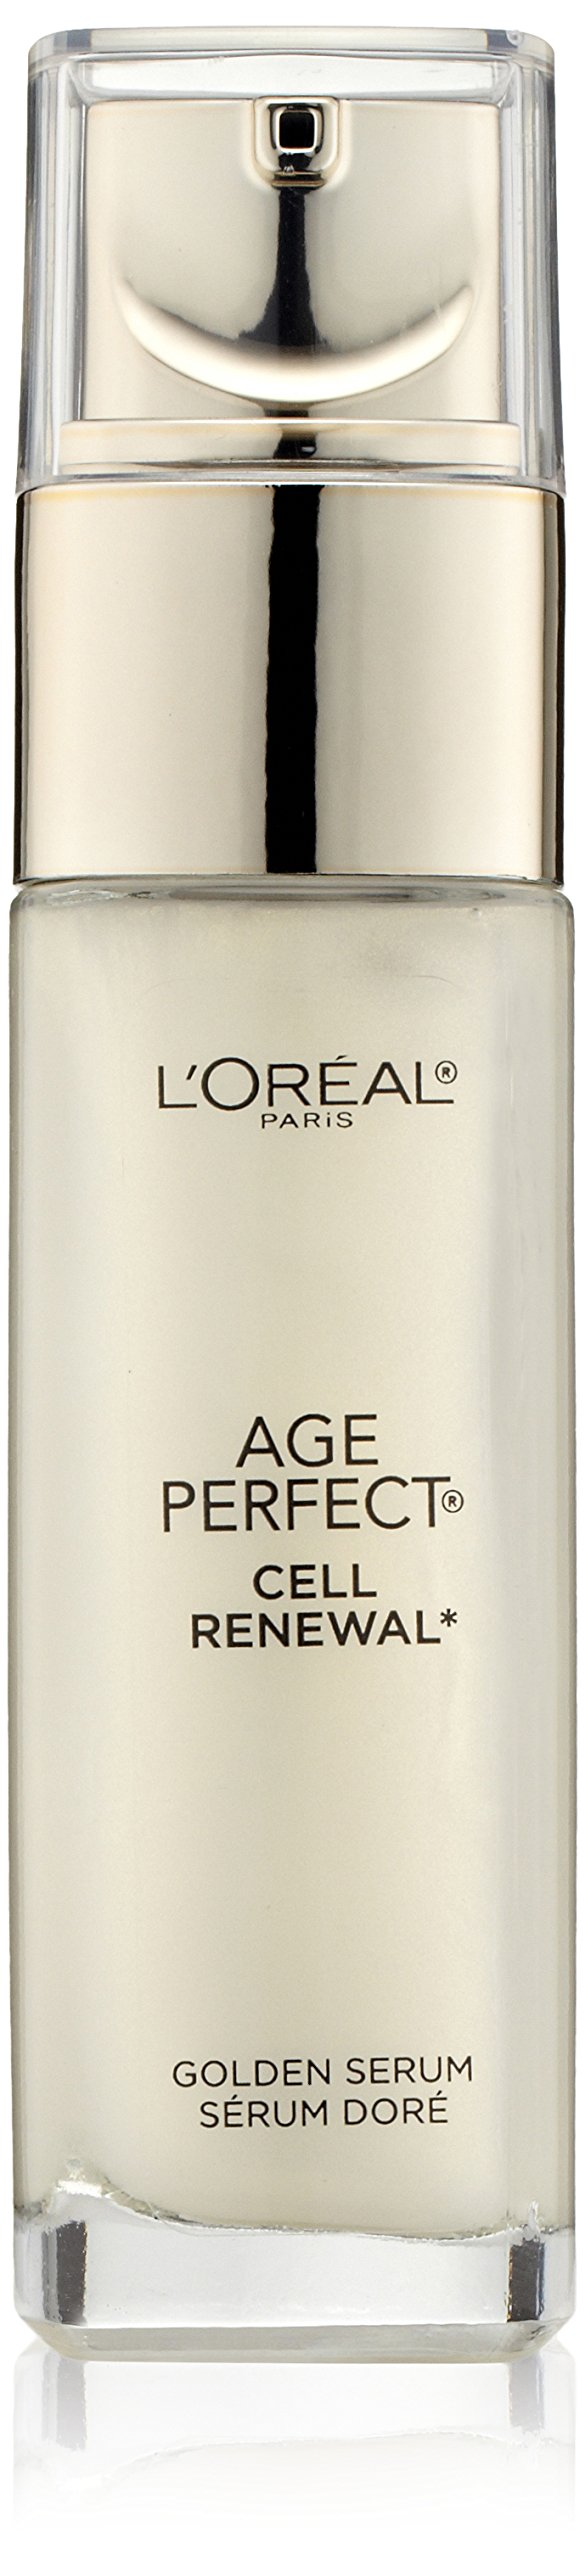 L'Oreal Paris Skincare Age Perfect Cell Renewal Golden Face Serum, Anti-Aging Serum to Refine, Exfoliate and Replump Mature Dull Skin, 1 fl. oz.